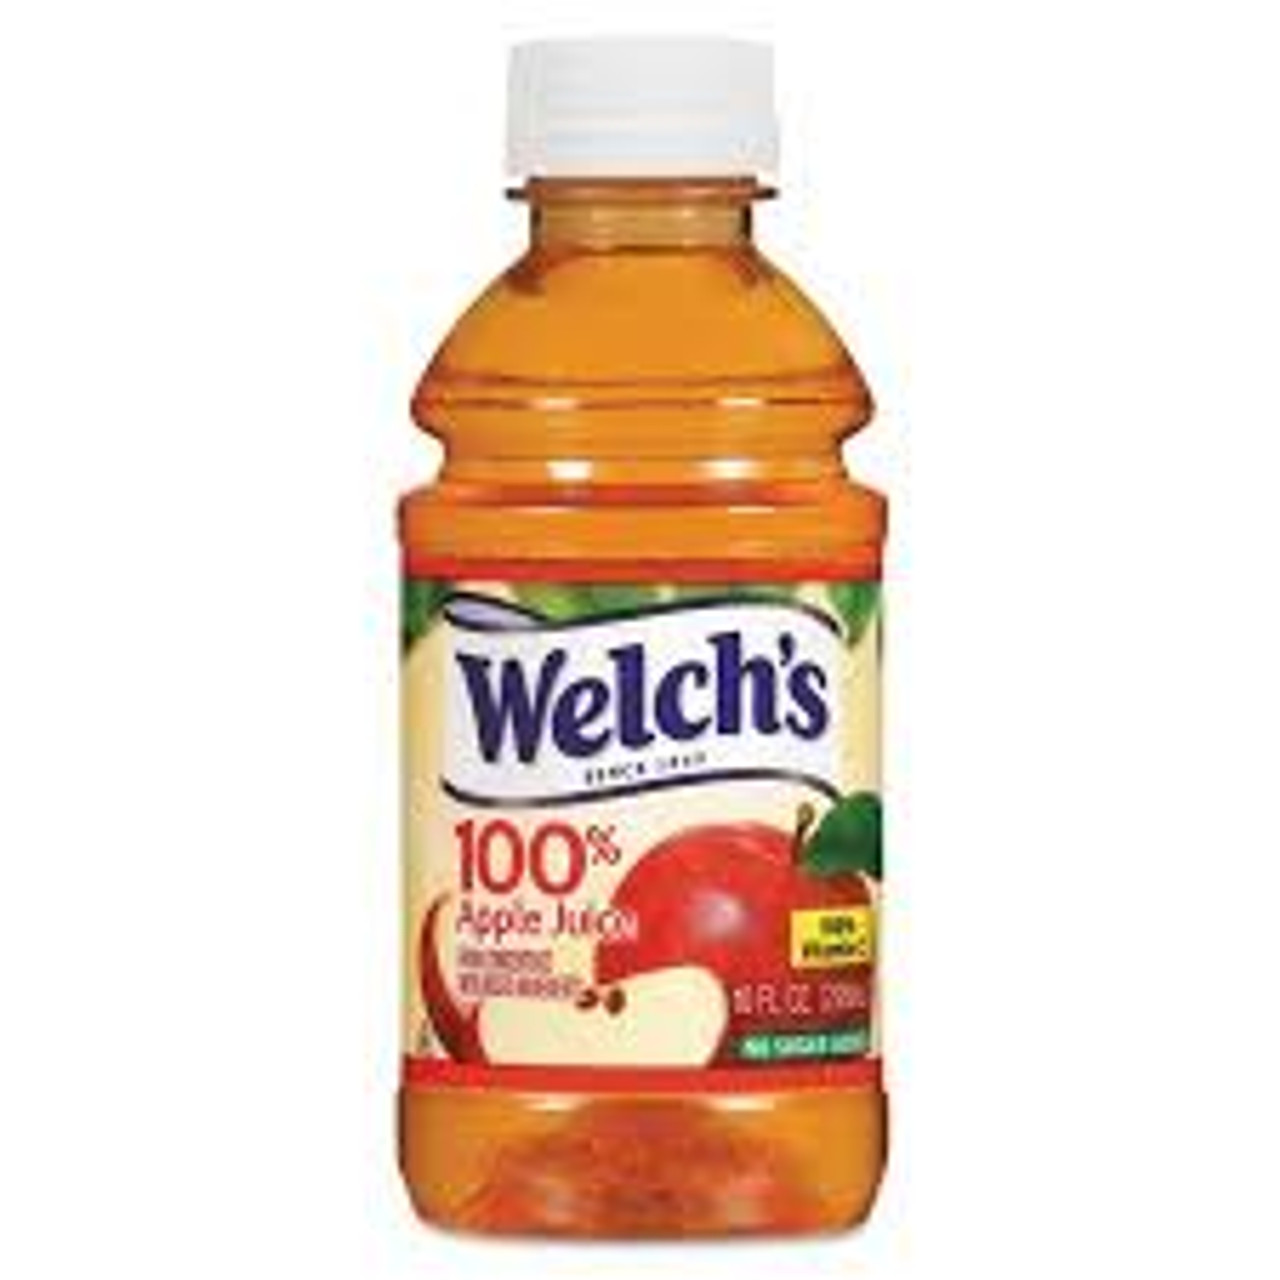 An American classic that is always a crowd pleaser. Our apple juice is pressed from the best Washington apples to give you the earthy, honey-like taste you love.